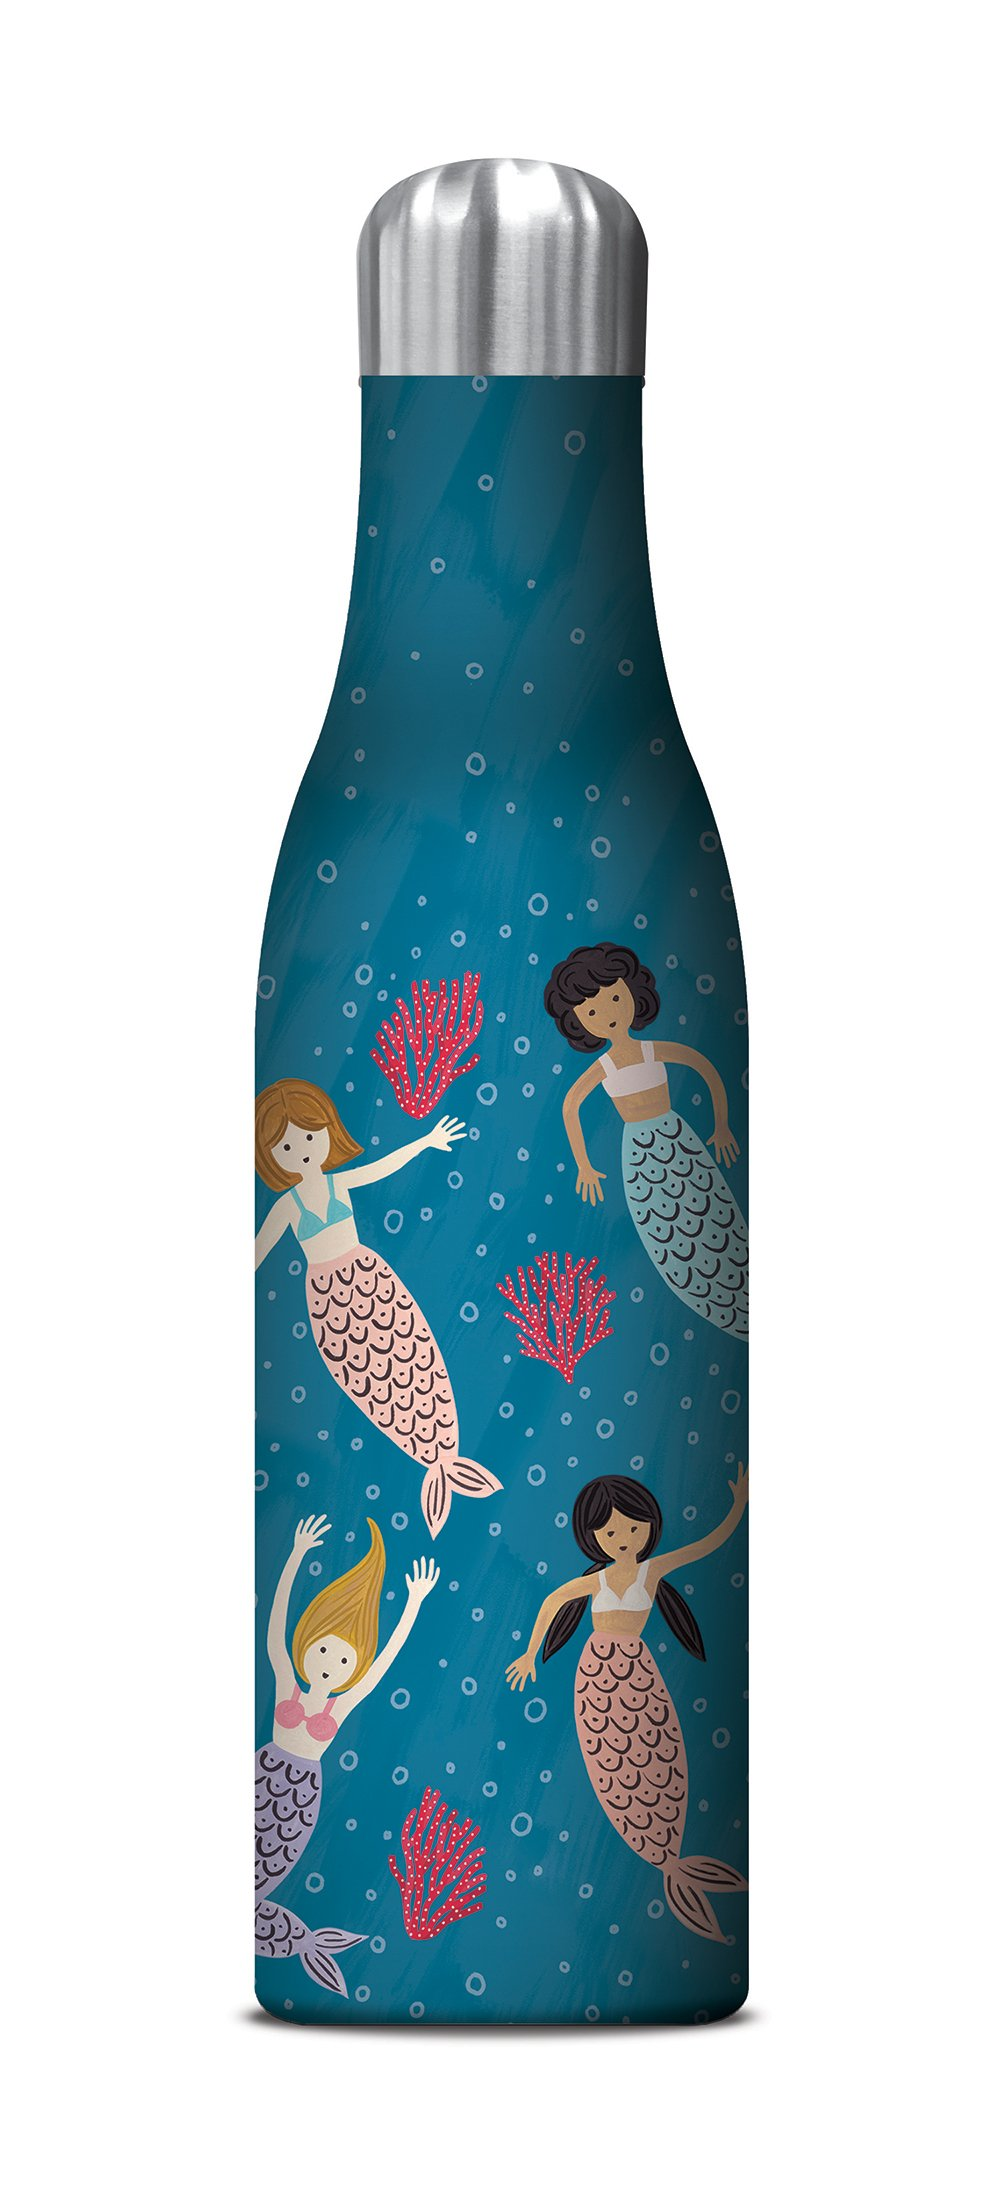 Studio Oh! 17 oz. Insulated Stainless Steel Water Bottle Available in 10 Different Designs, Stacy H. Kim Mermaid Tales by Studio Oh